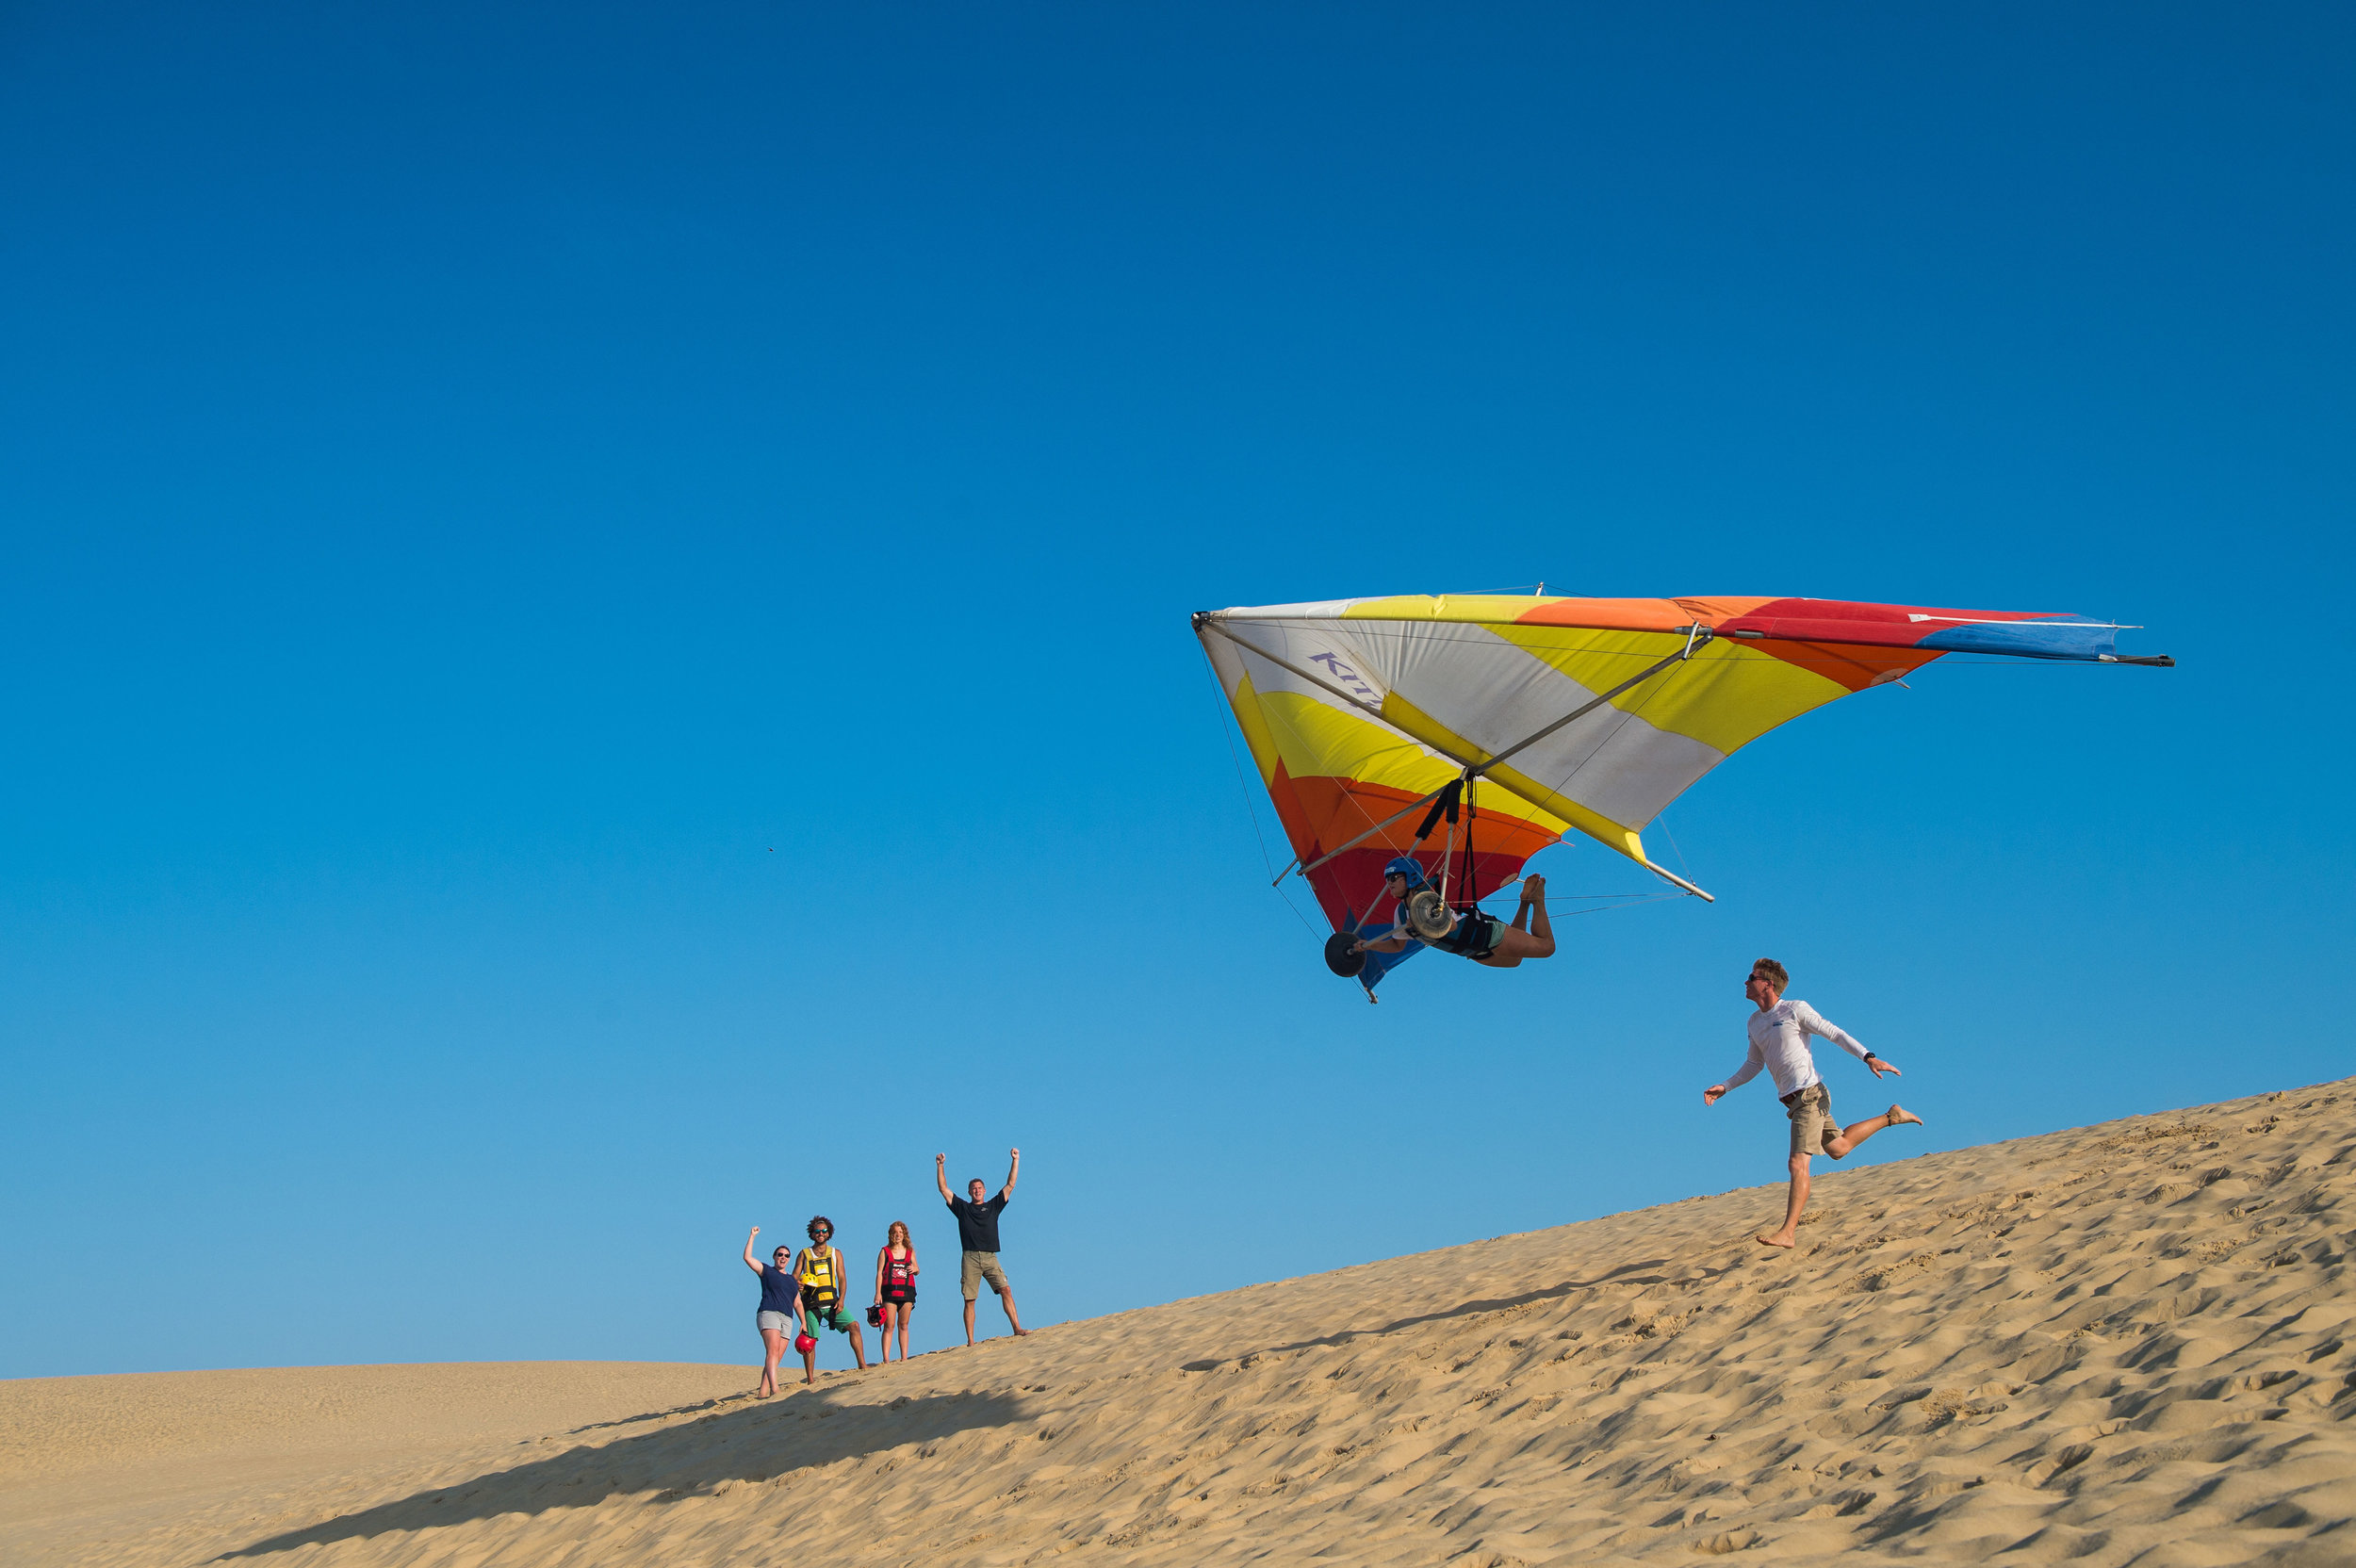 Kitty Hawk Kites takes people out hang gliding near where the Wright Brothers had the world's first four successful motorized airplane flights at Kitty Hawk on North Carolina's Outer Banks. Courtesy of Kitty Hawk Kites.